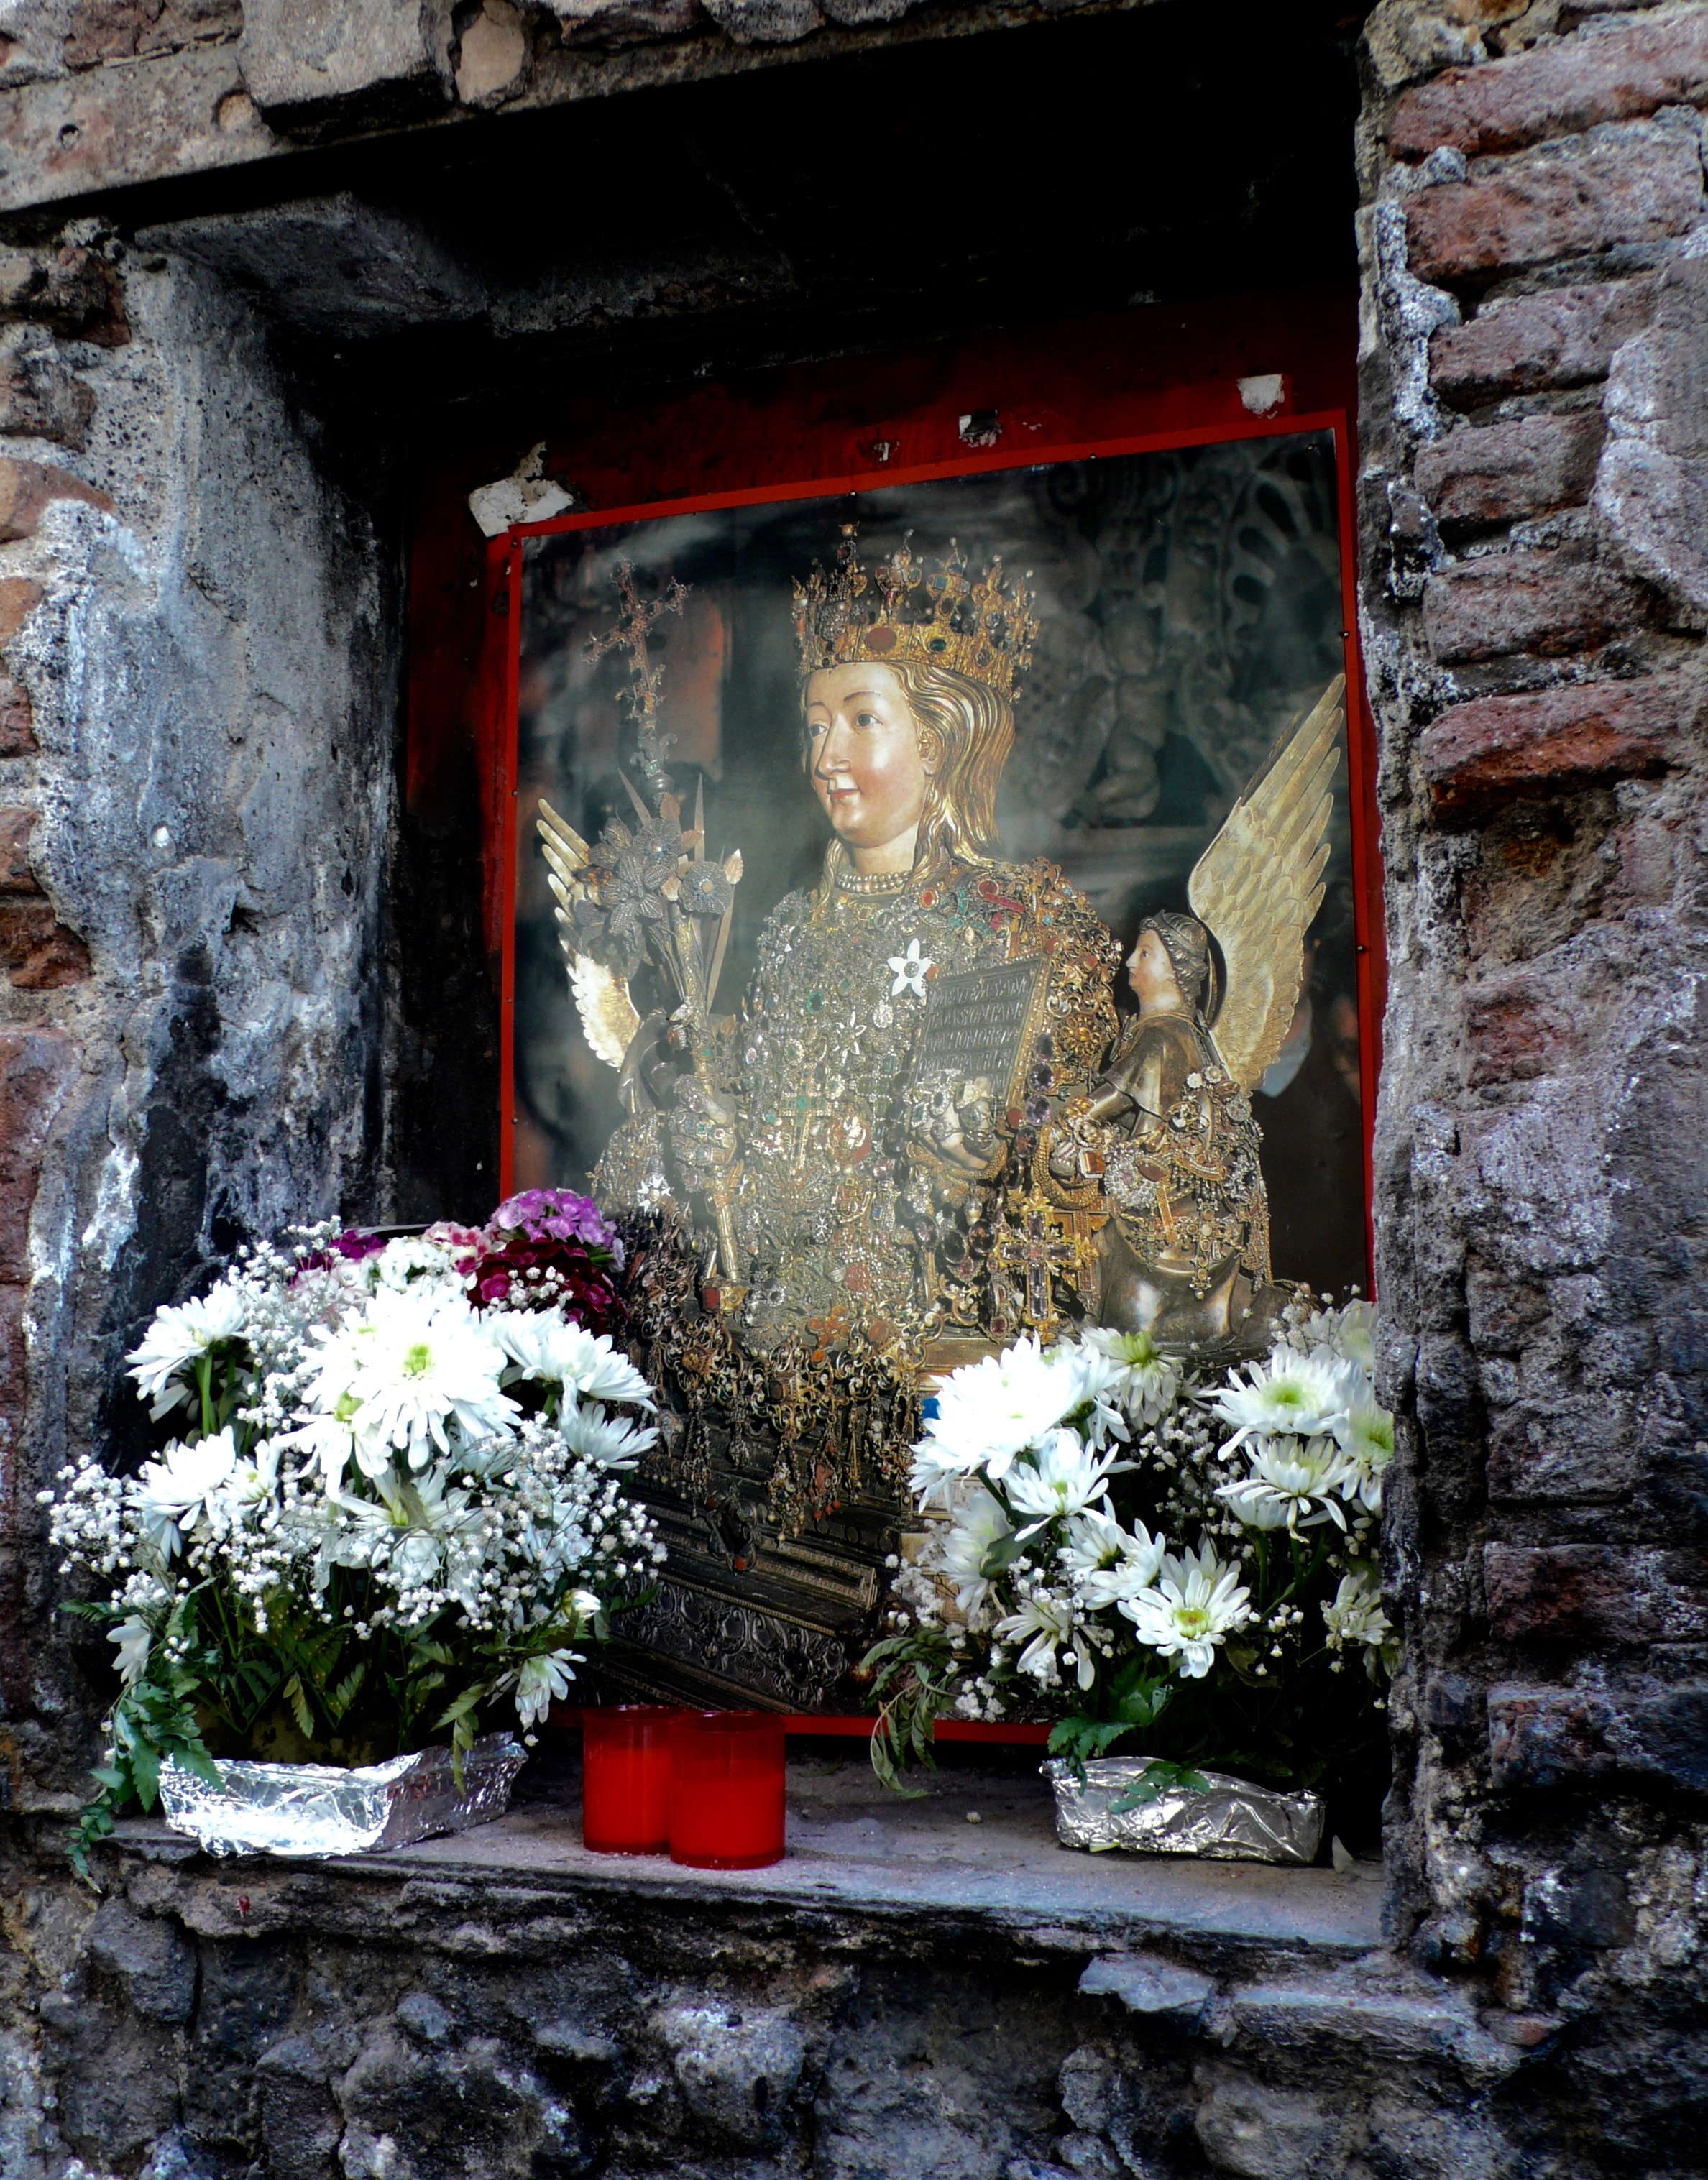 Altars and Shrines for Palermo's patron saint, Santa Agata are at every corner.